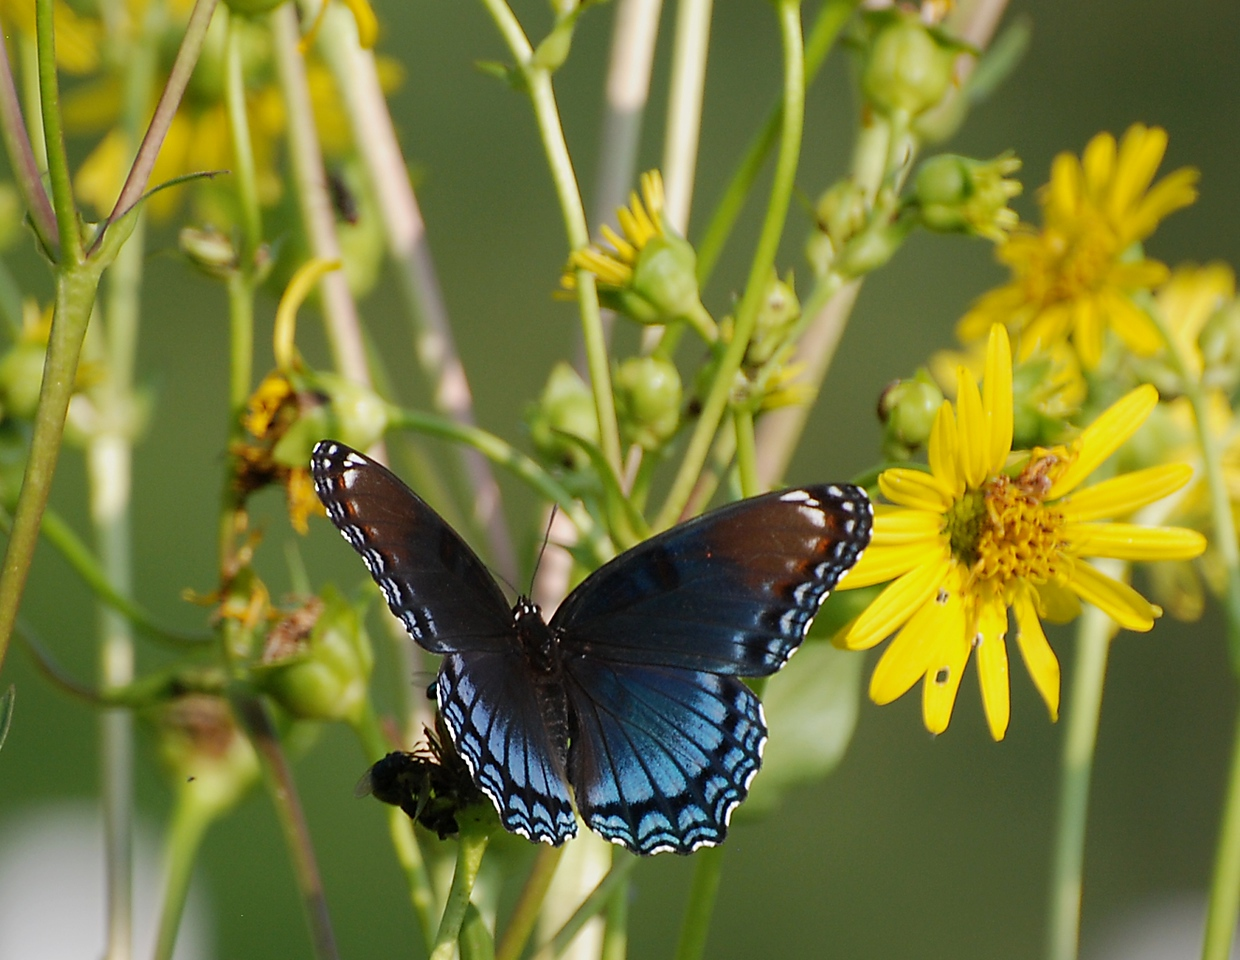 I saw several butterflies like this one; Meadowbrook park, Urbana